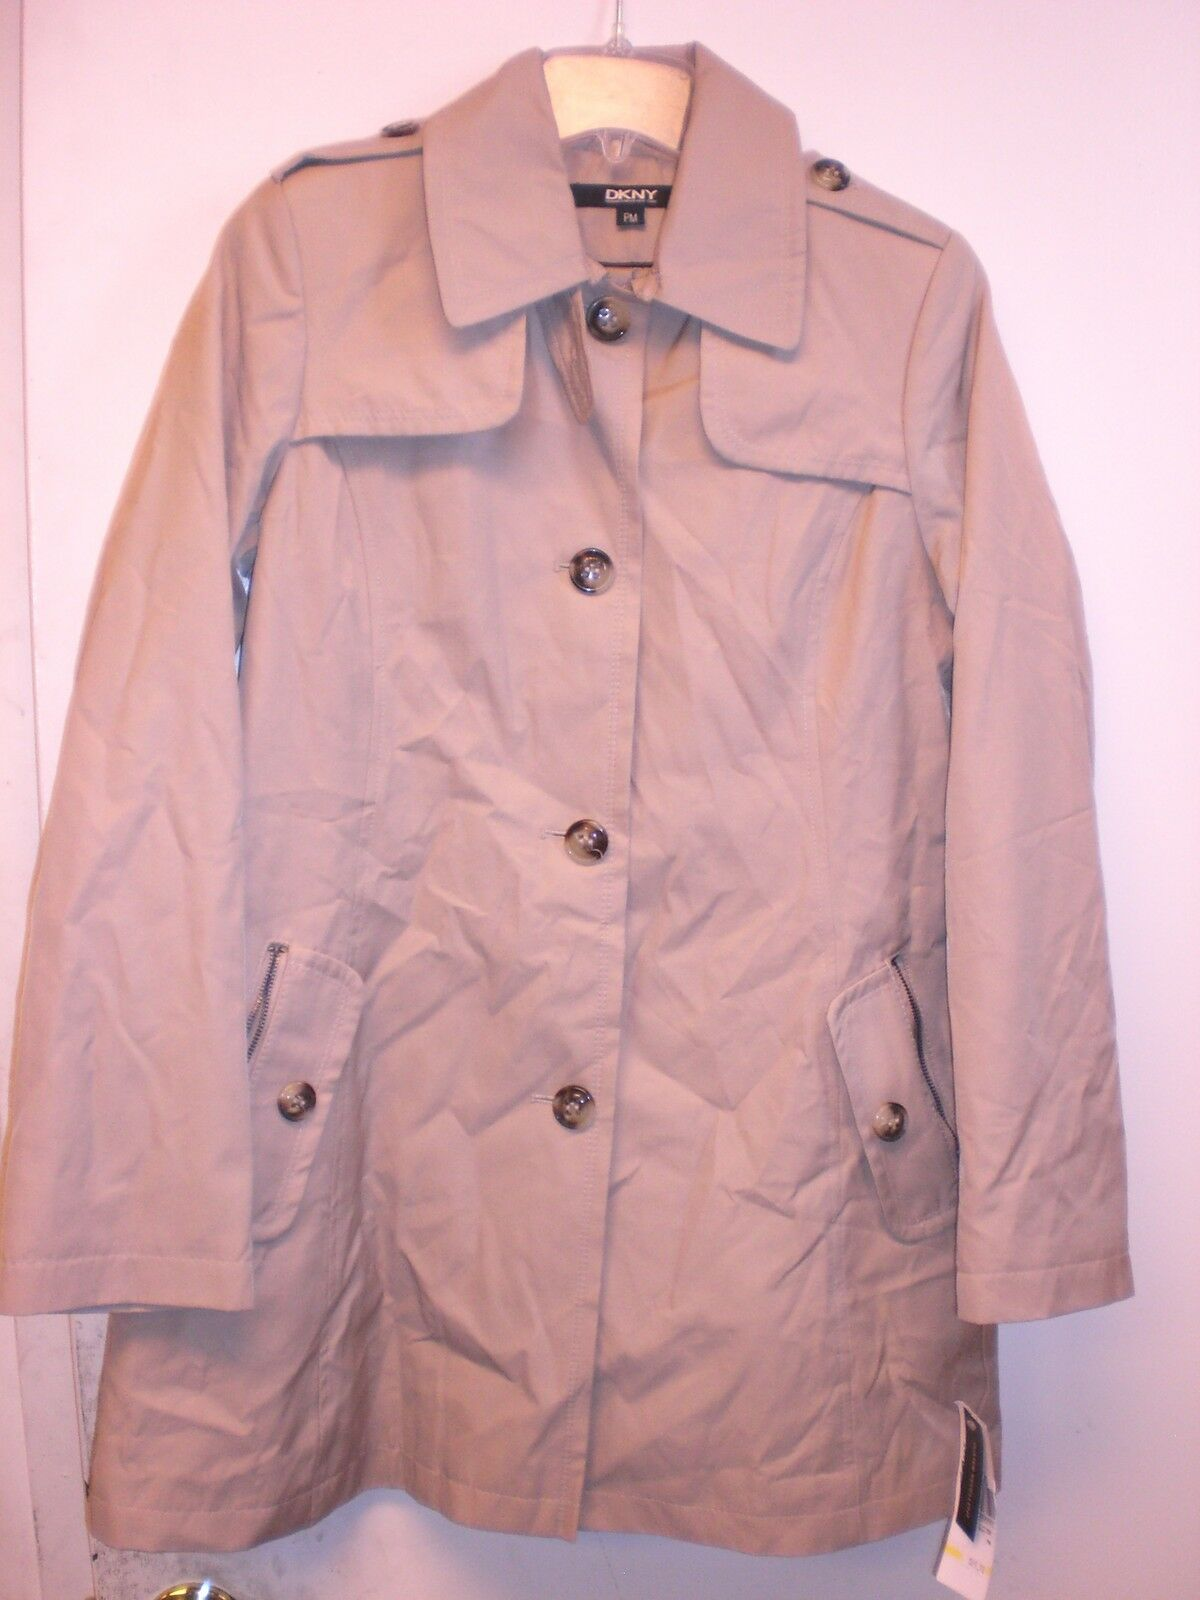 DKNY 06189 SIZE M CAMELTRENCH COAT COAT COAT NEW WITH TAGS MISSING BELT 14c4ef